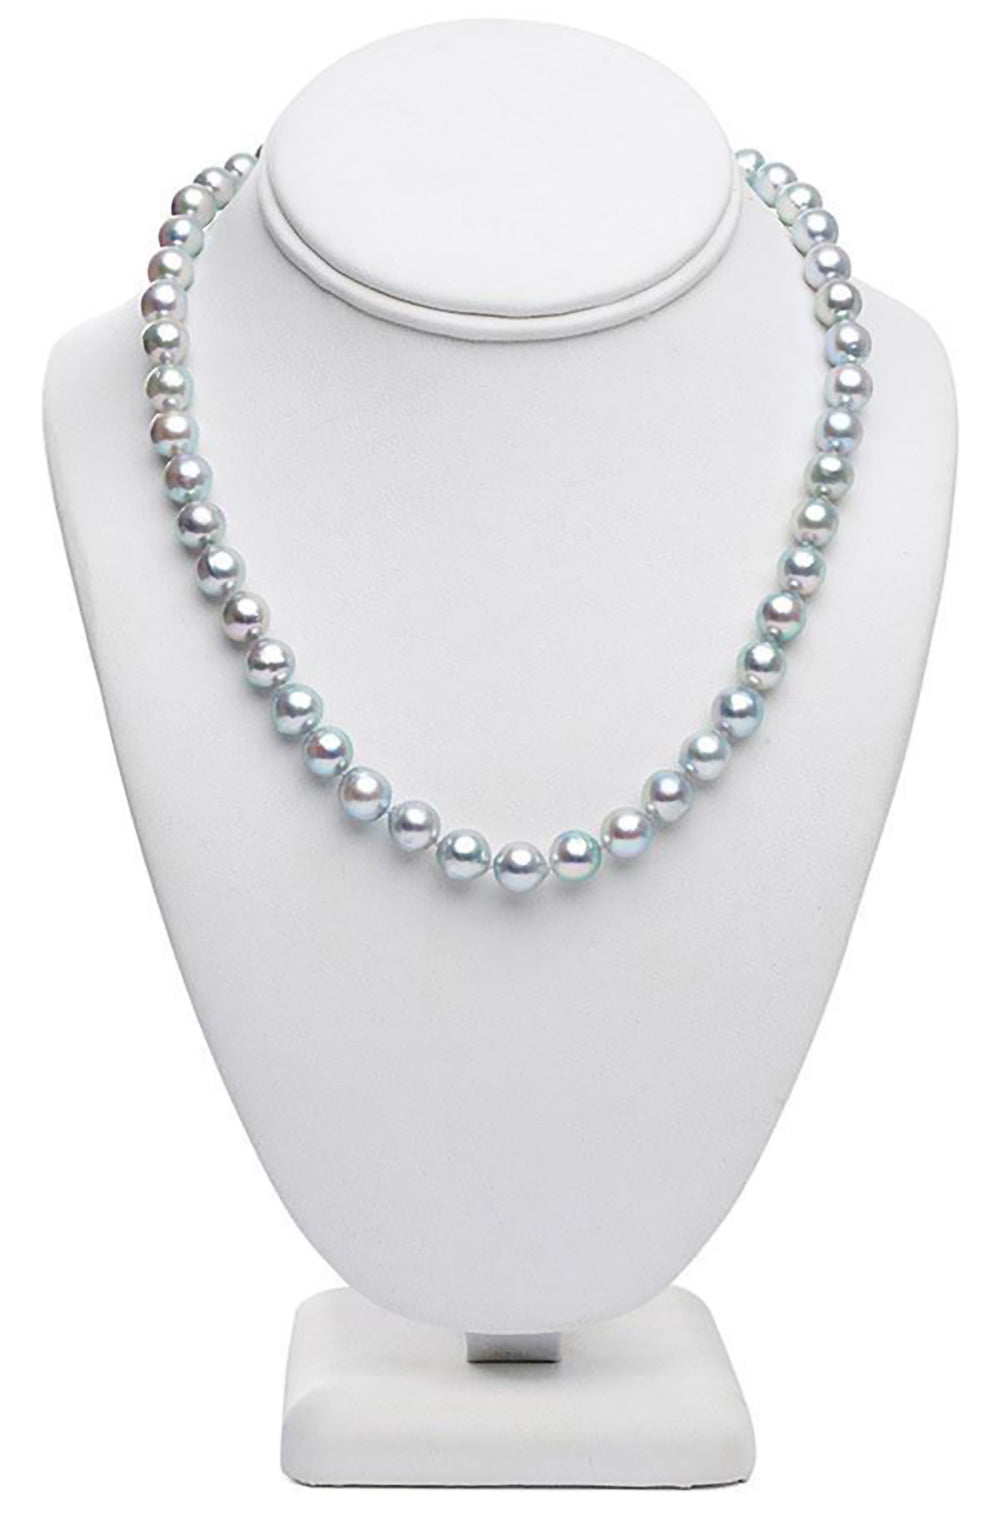 Baroque Blue Akoya Pearls are Back in Stock!